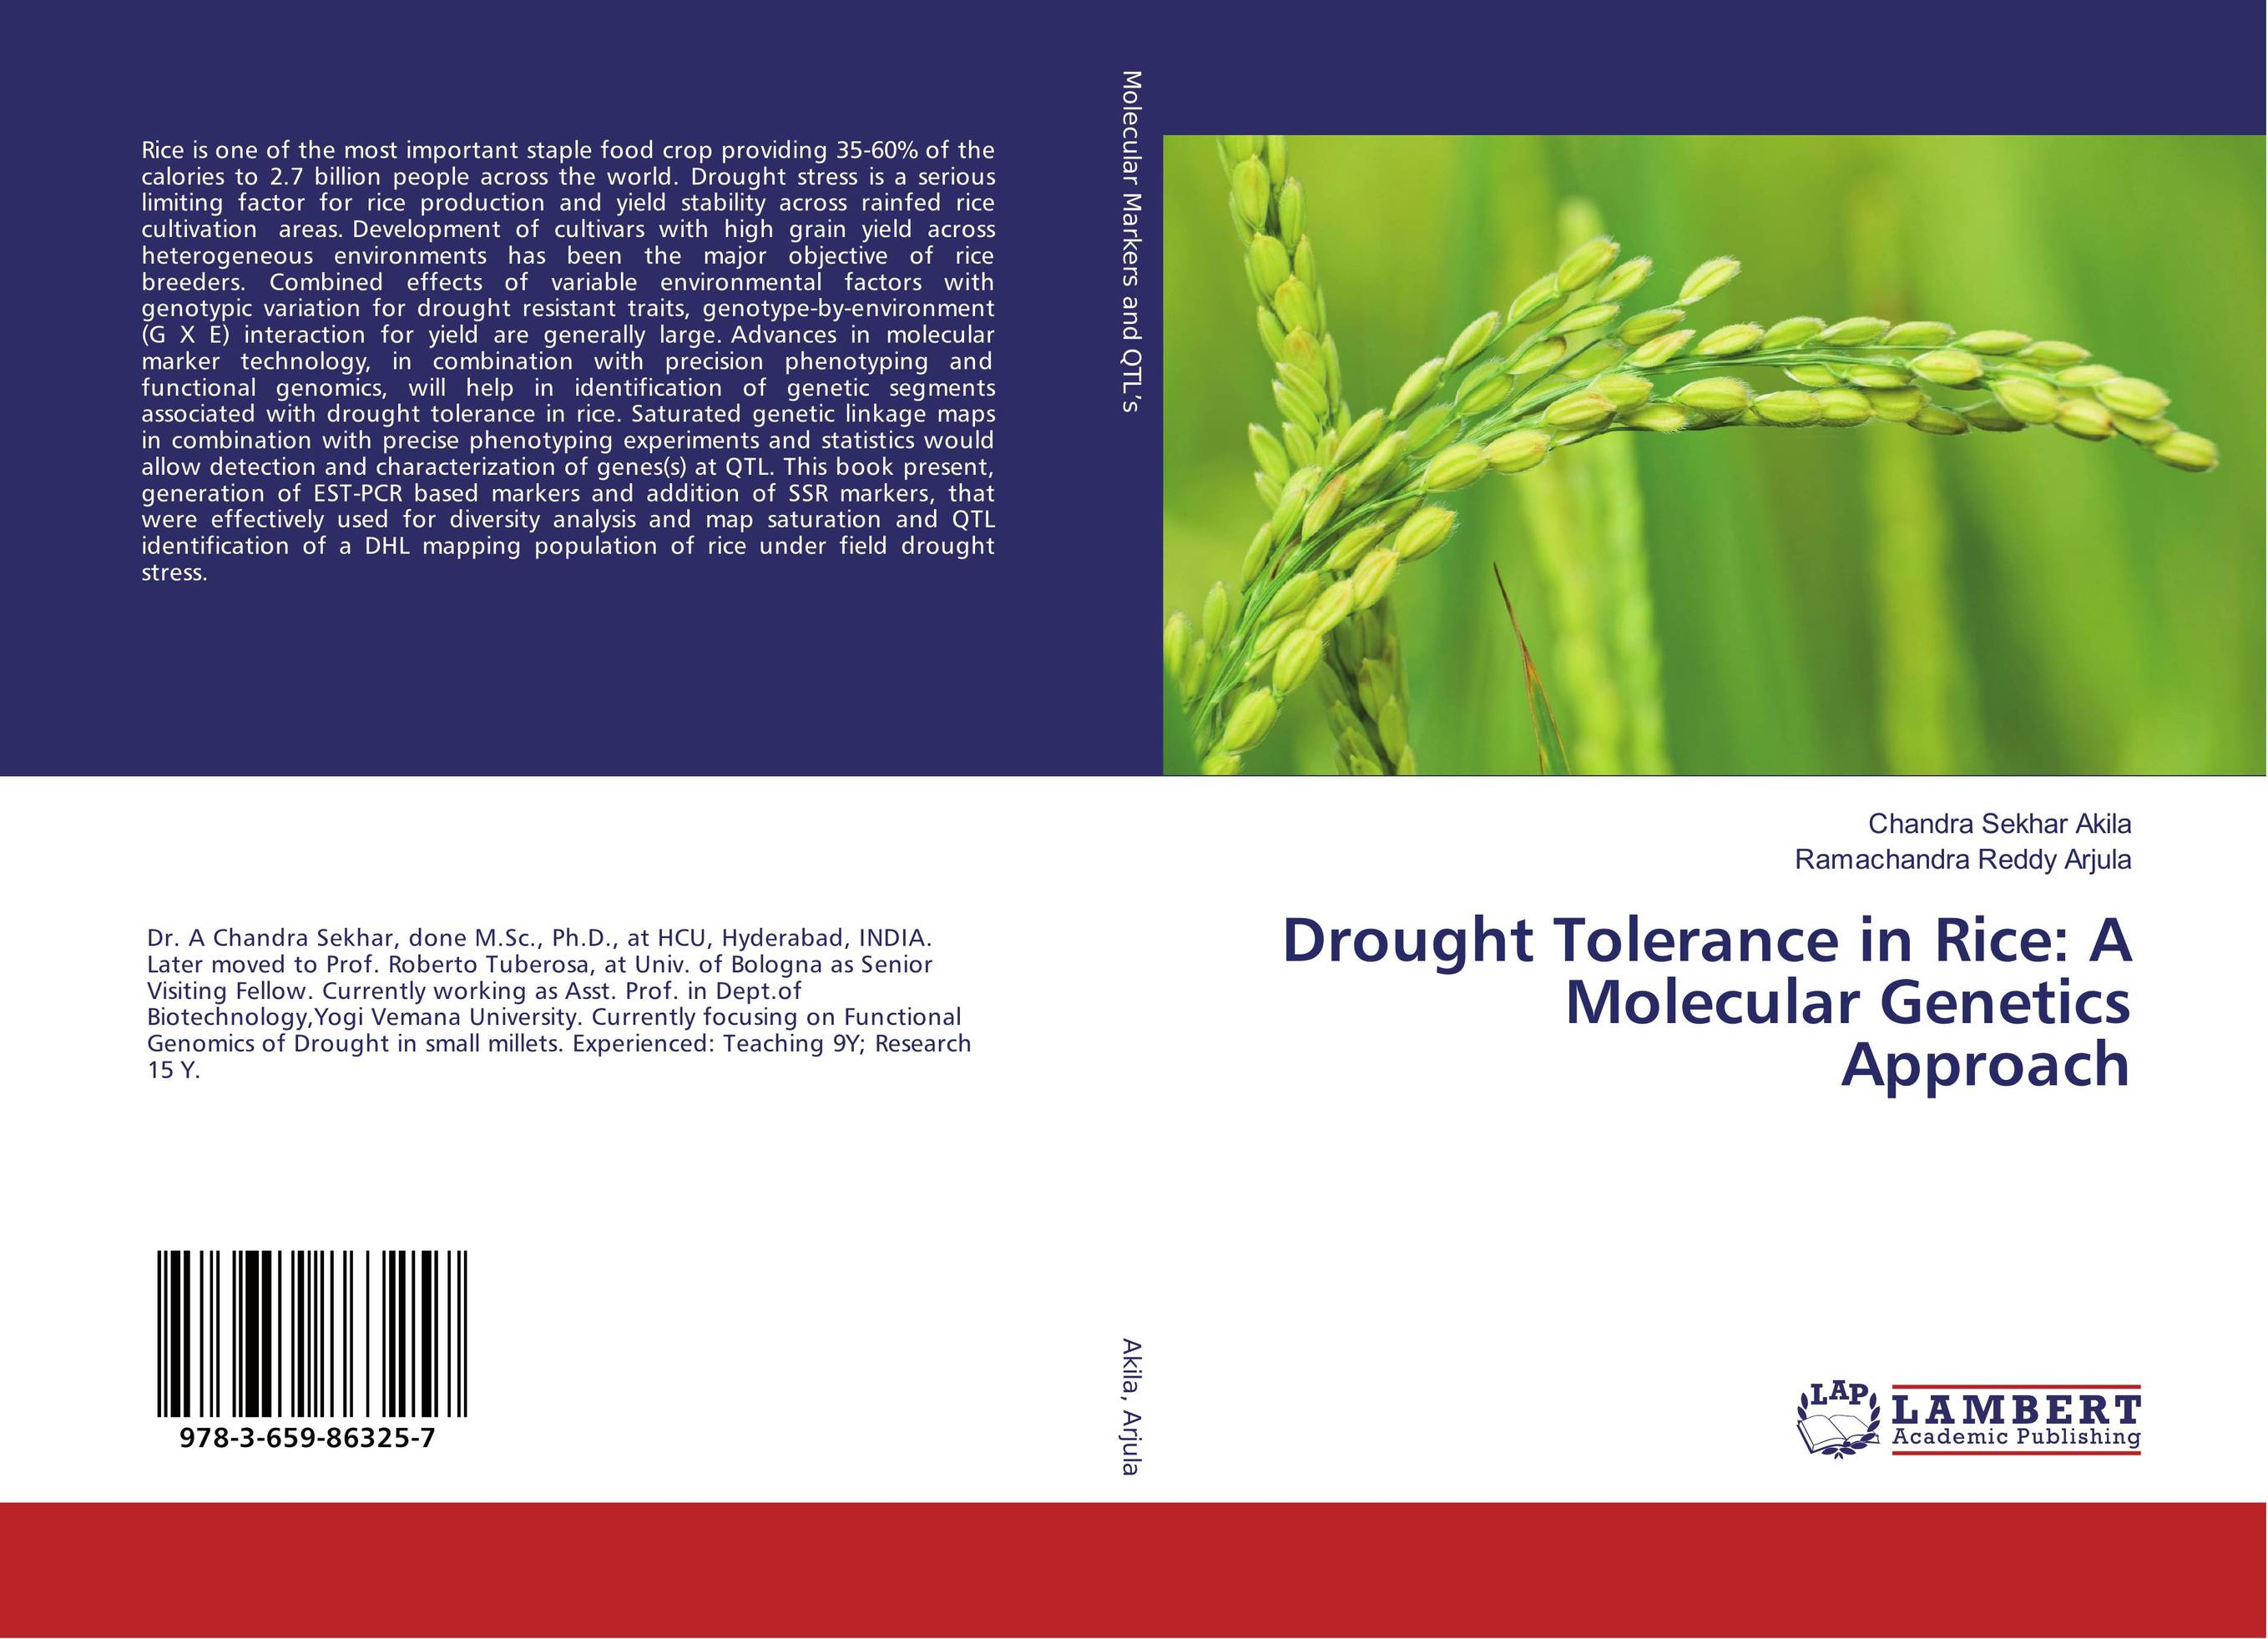 Drought Tolerance in Rice: A Molecular Genetics Approach eman ibrahim el sayed abdel wahab molecular genetic characterization studies of some soybean cultivars